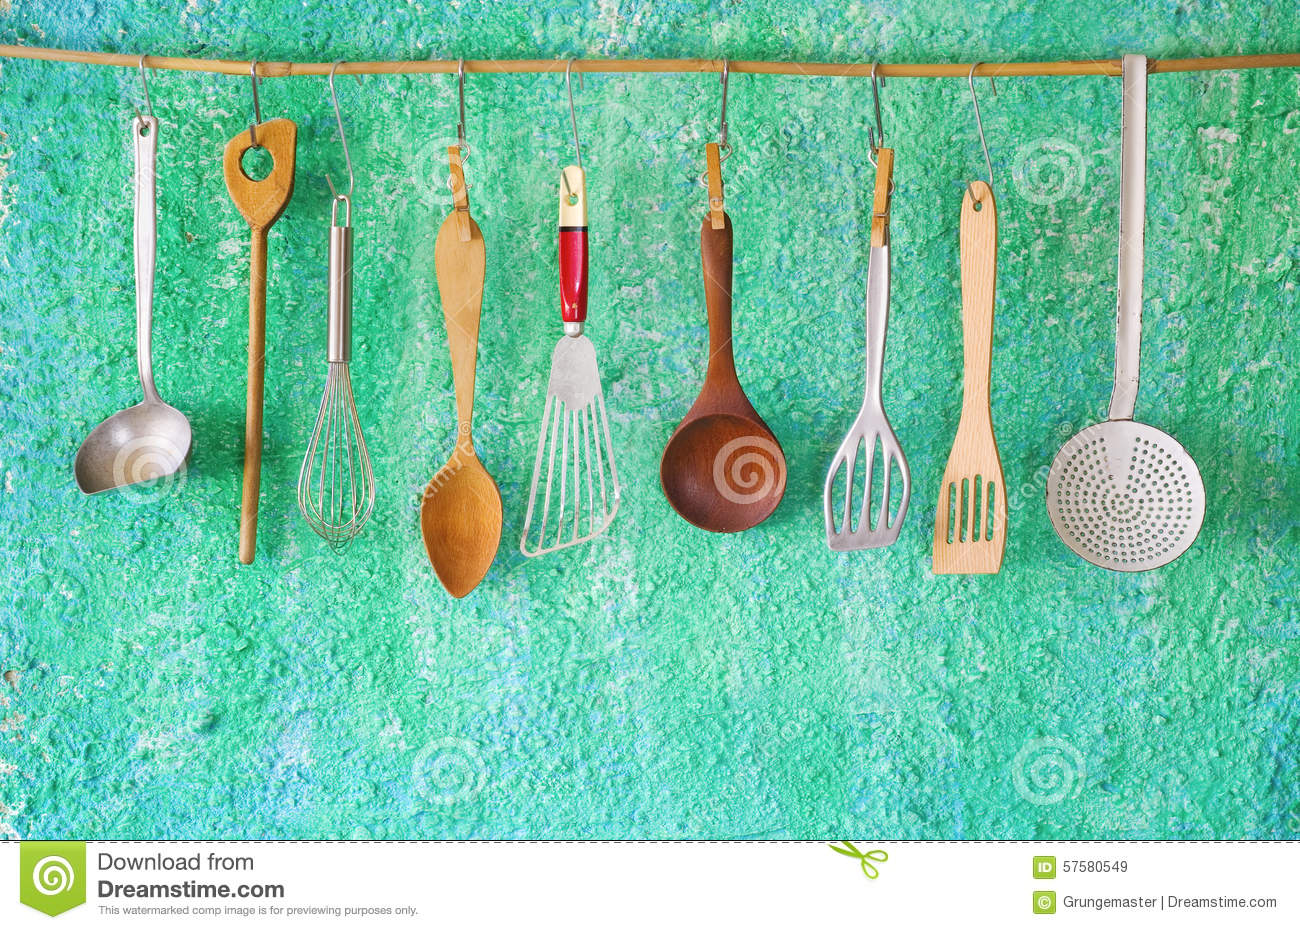 Review windows 10 mobile build 14328 windows clip60 - Hanging Kitchen Tools Hanging Vintage Kitchen Utensils